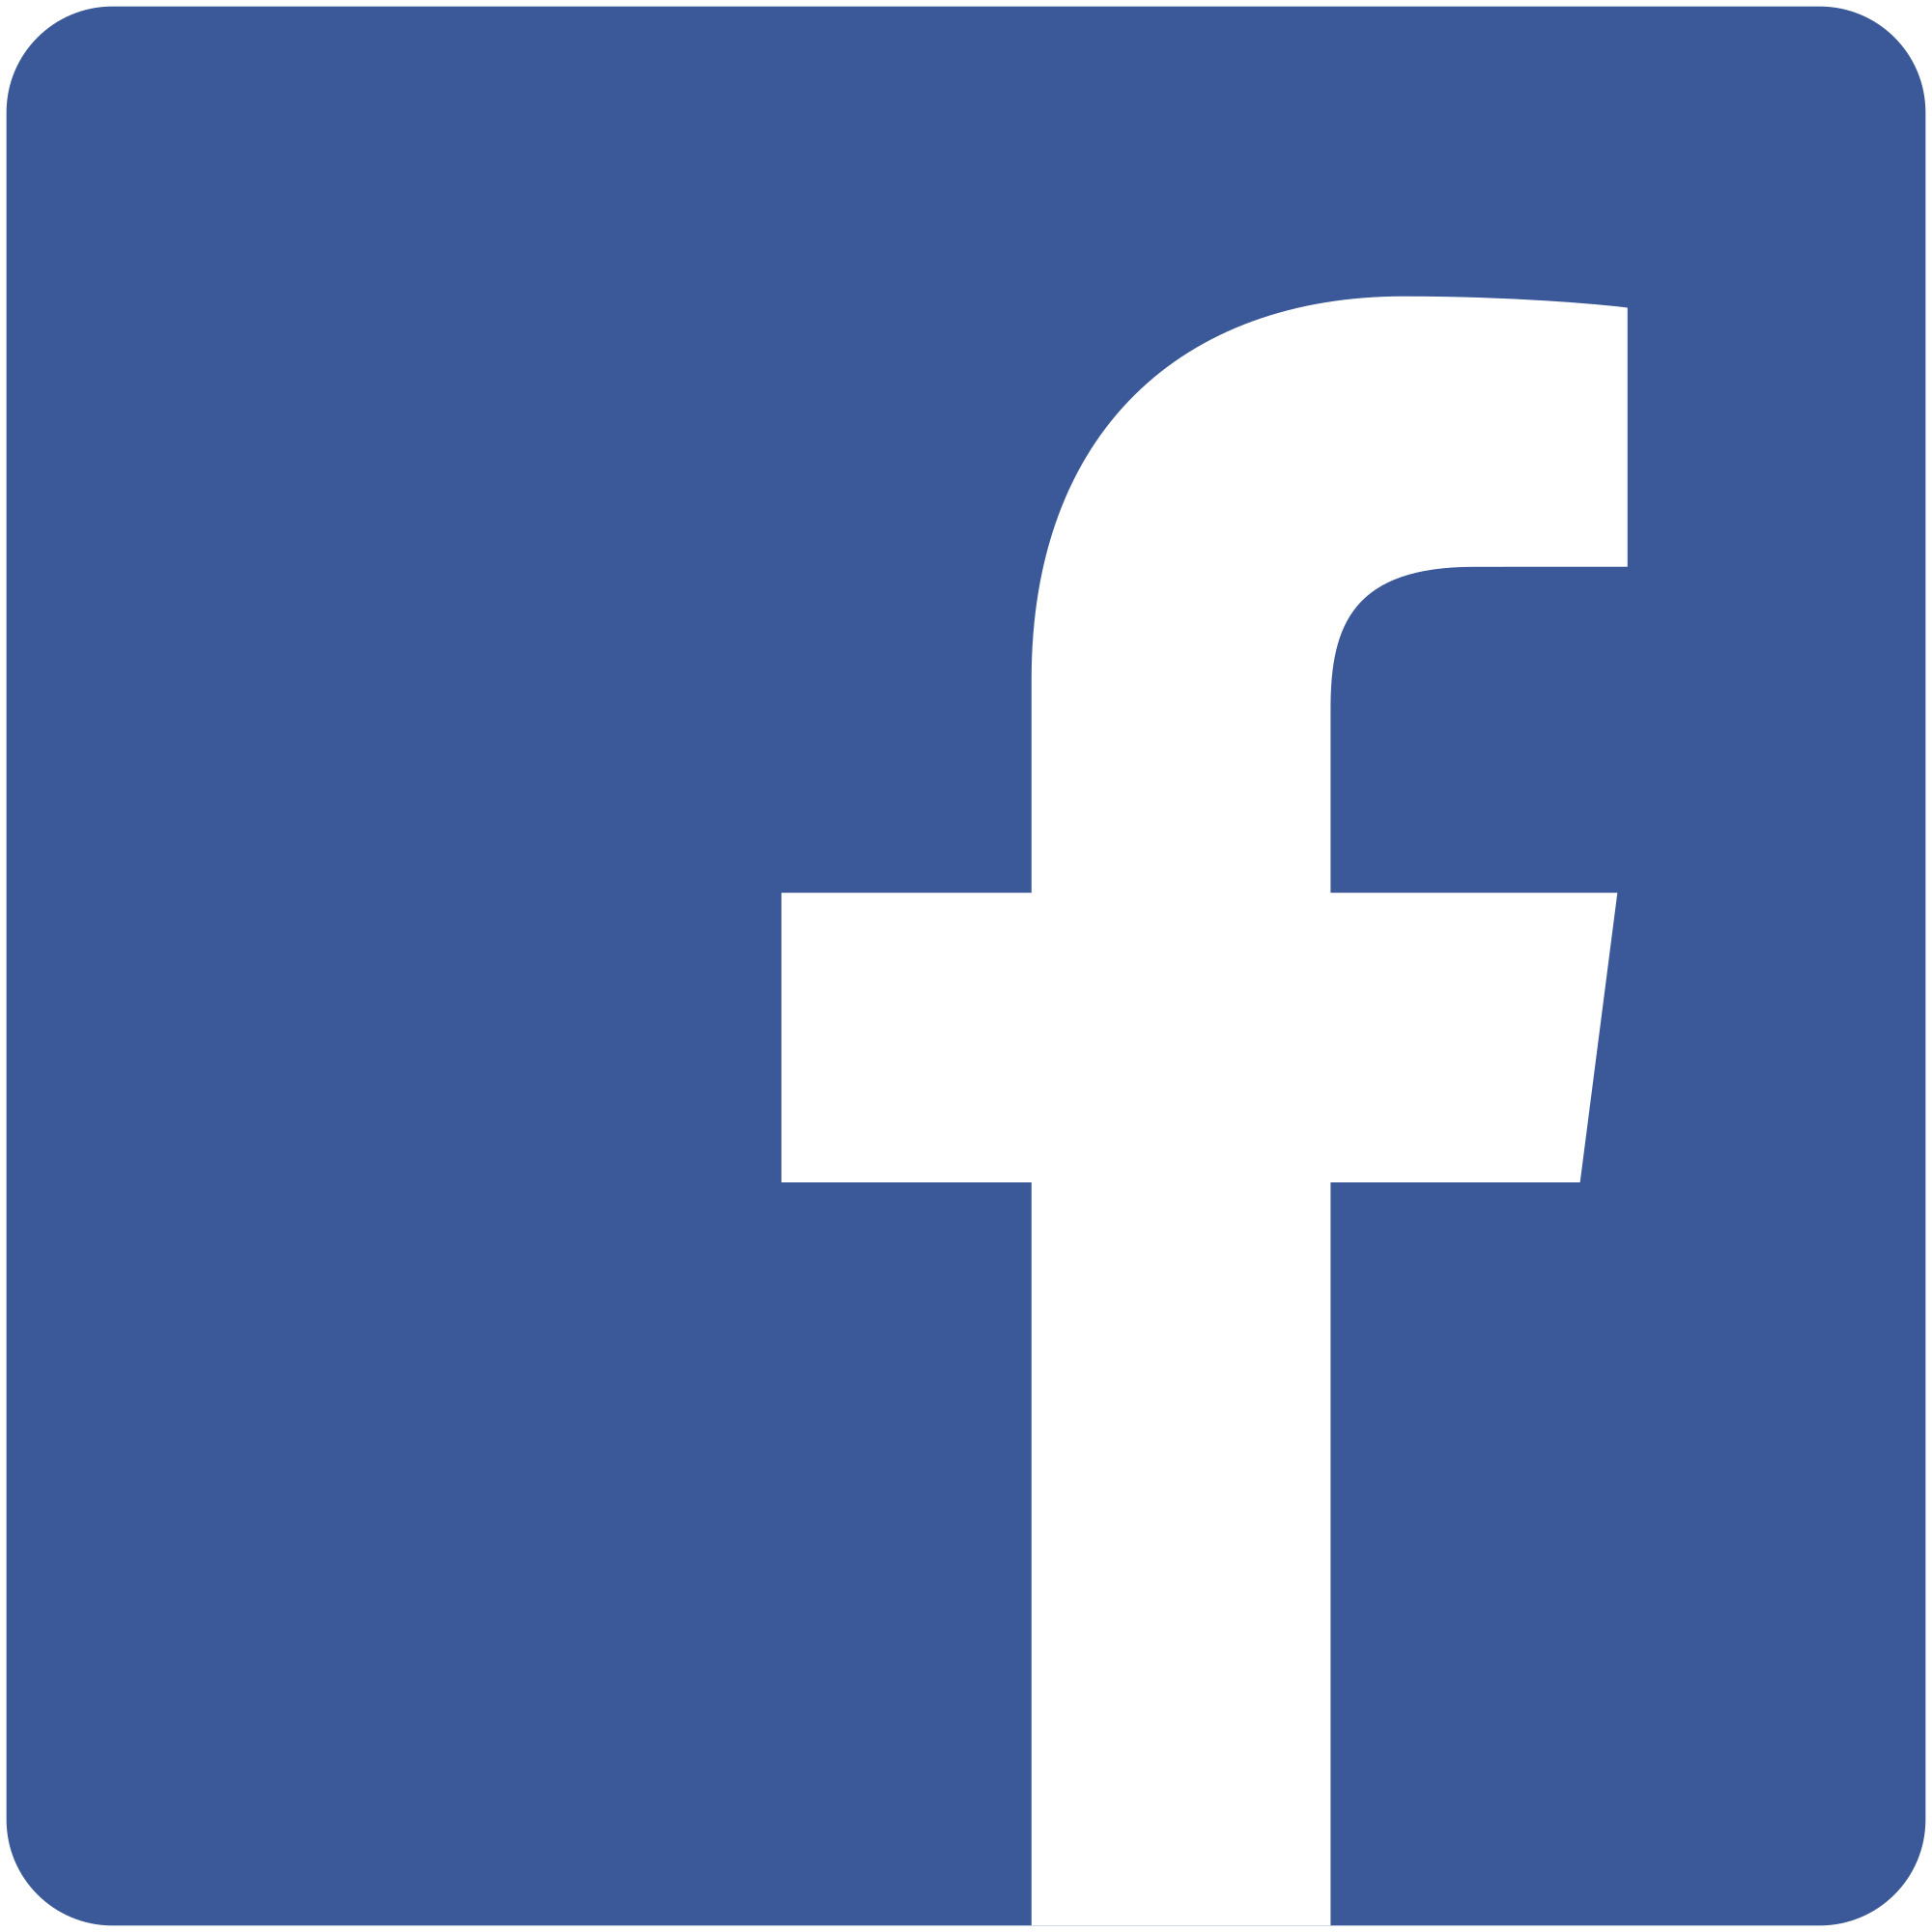 Facebookicon2013svg